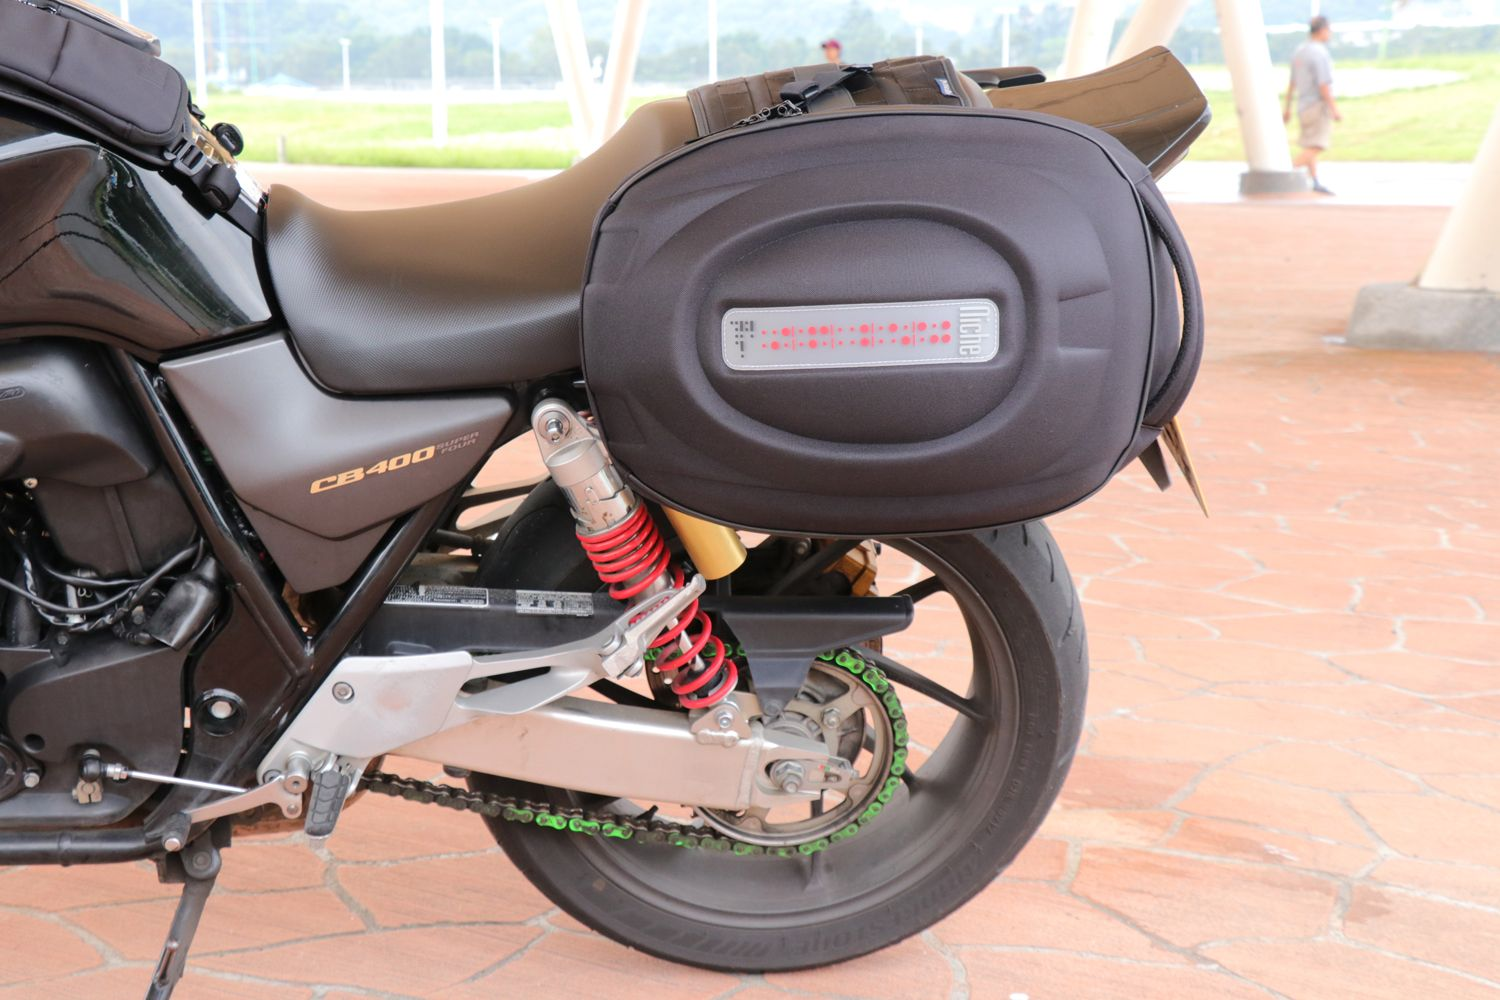 Niche Summit has coolest, most innovative motorcycle bags, luaage, backpacks for motorcycle riders